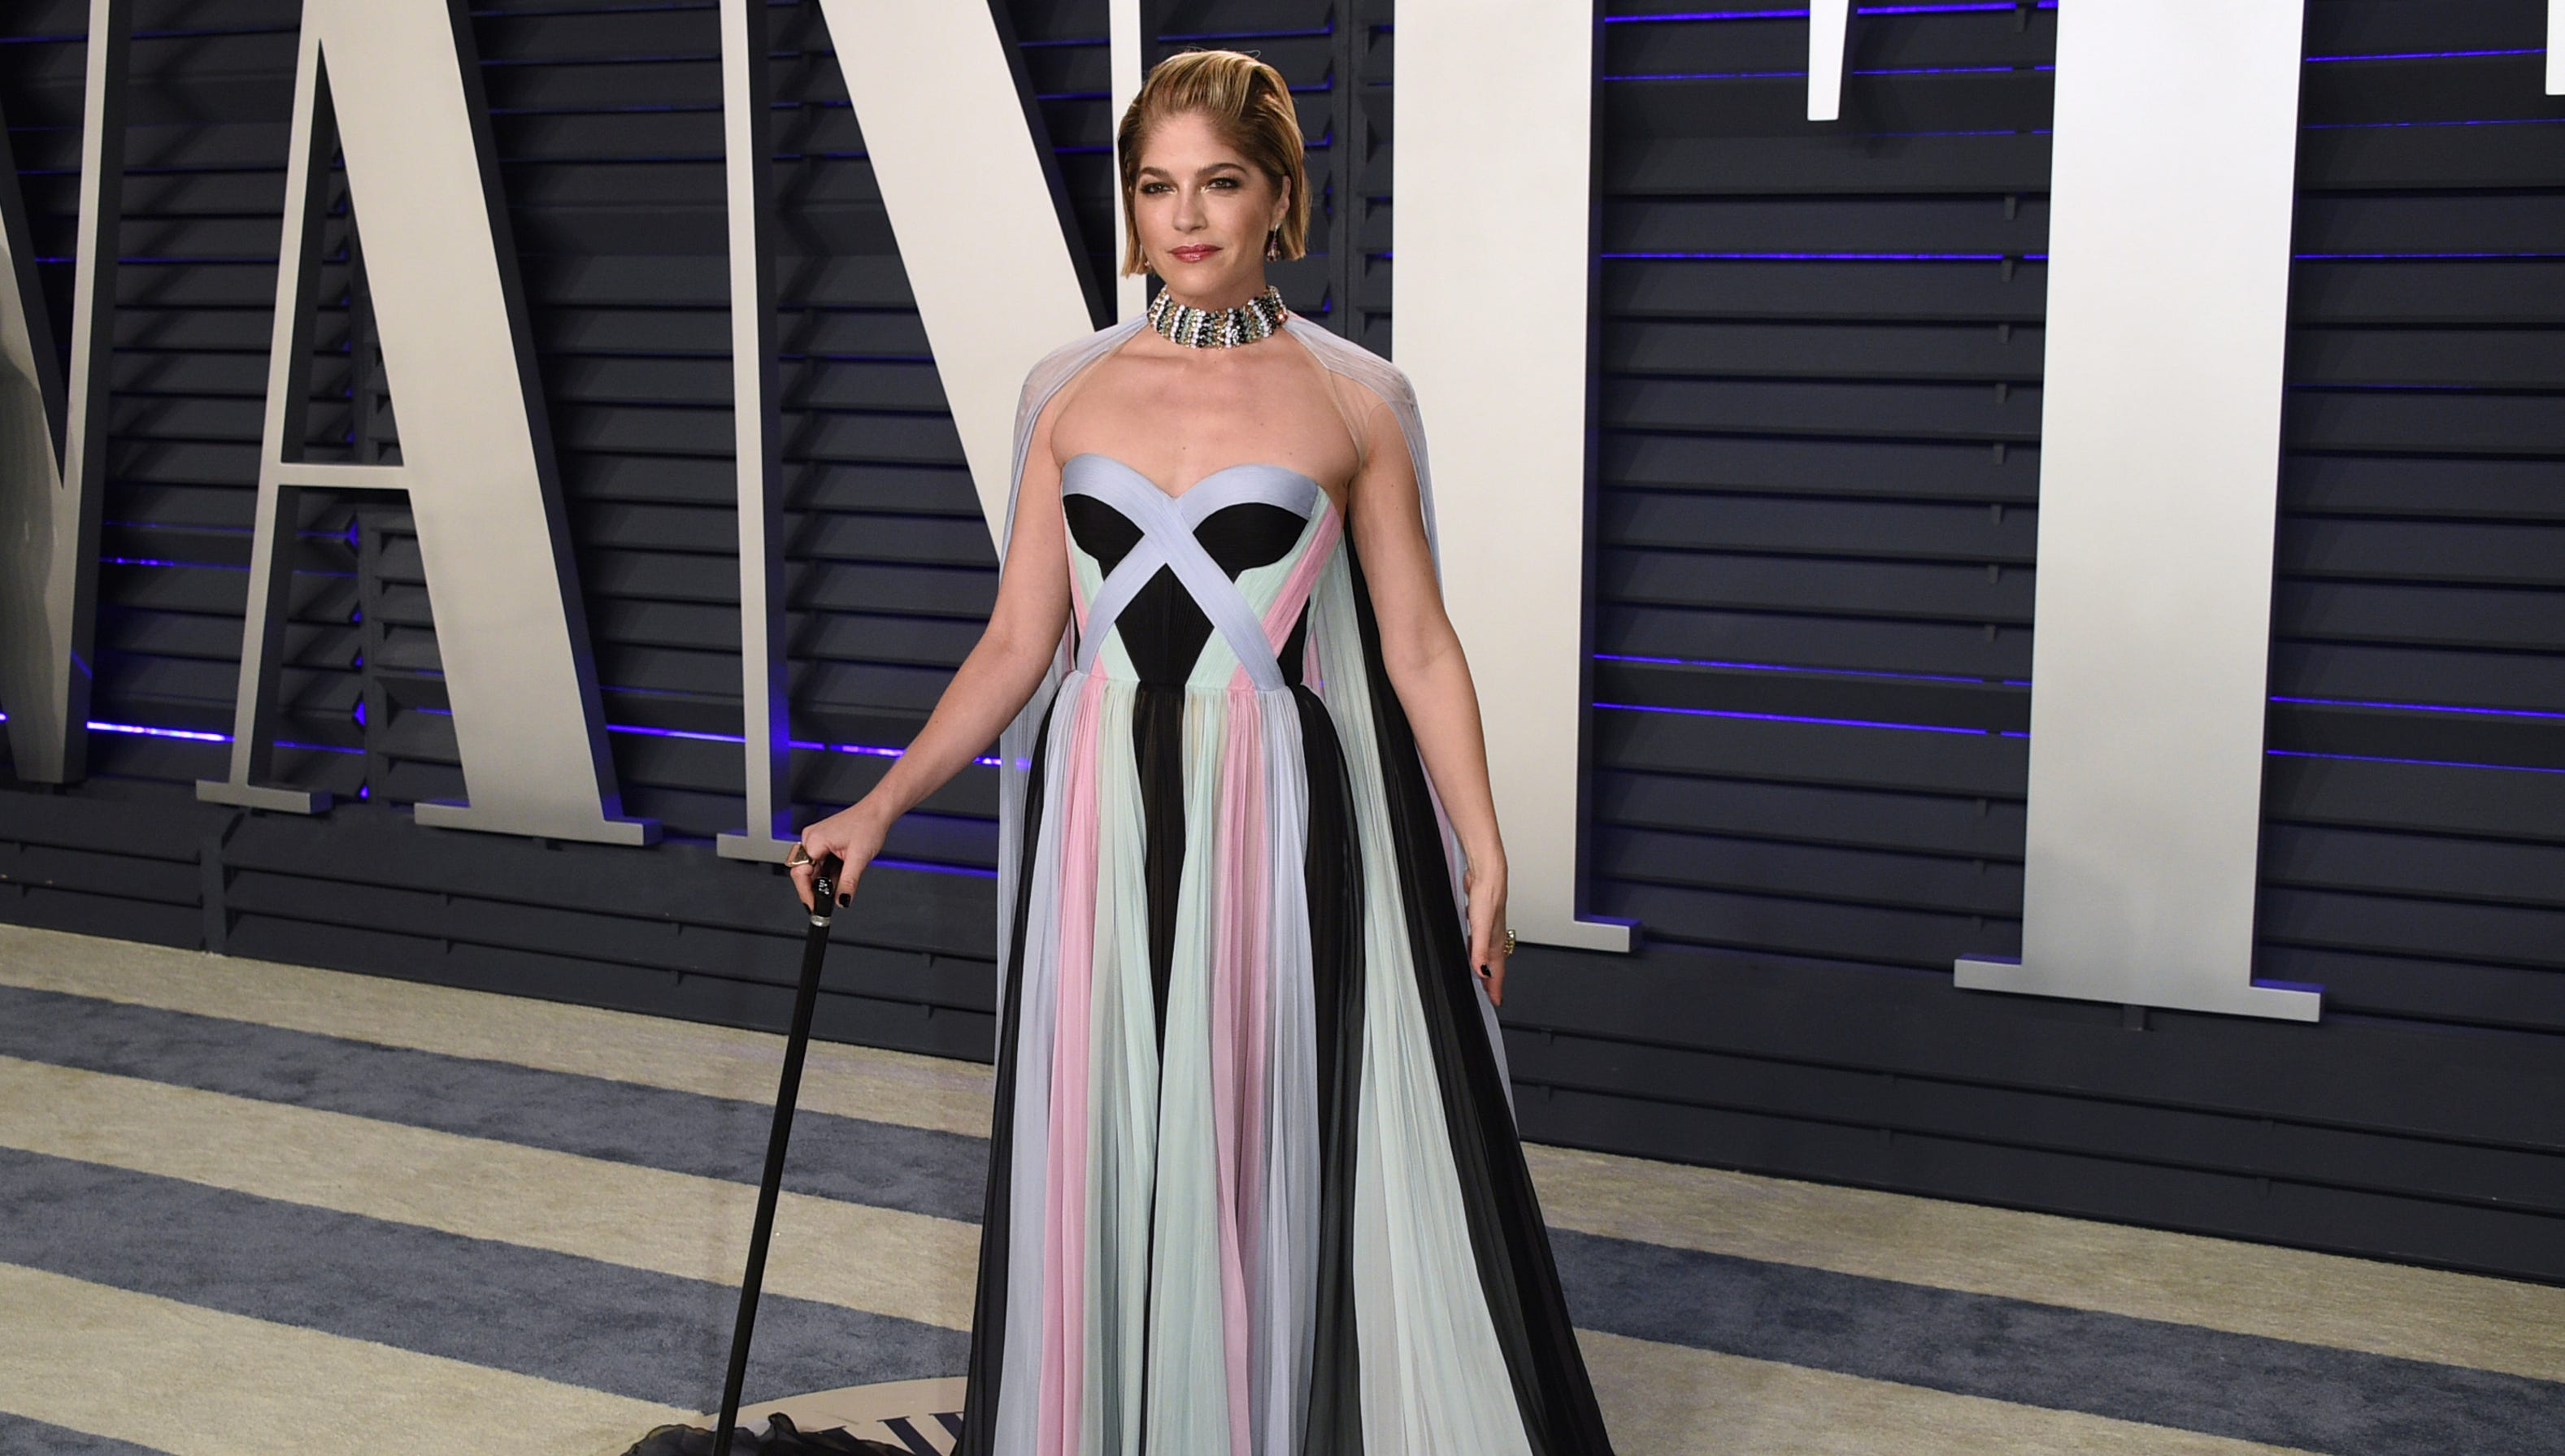 Selma Blair made her red-carpet return – complete with a glam cane –  at this year's Vanity Fair Oscar party.